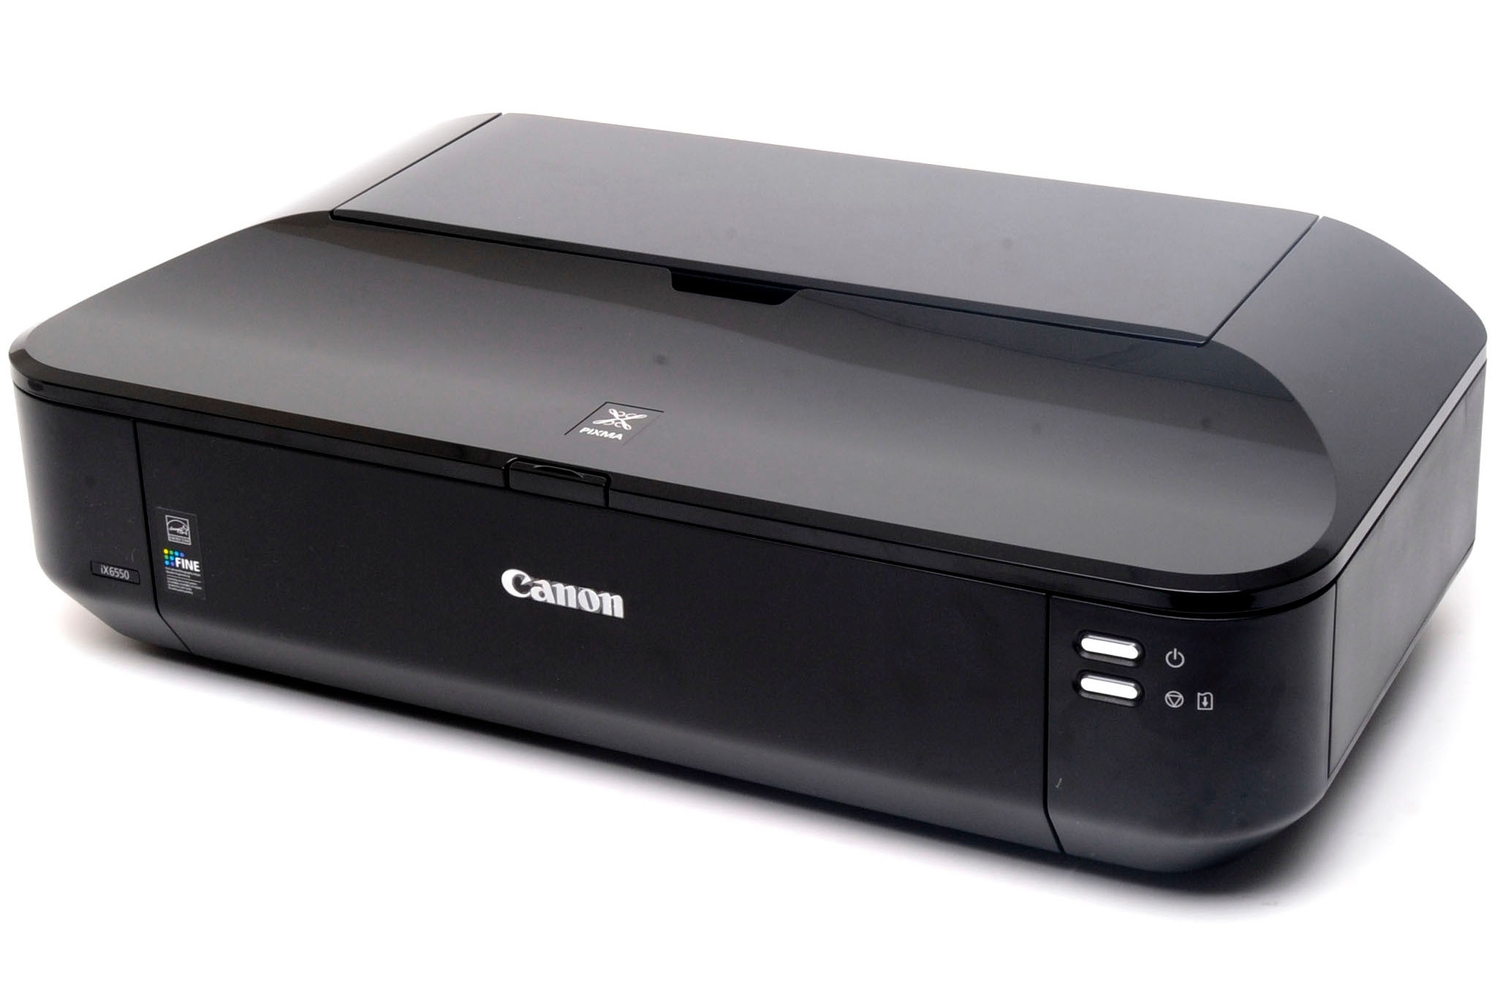 canon pixma ix6550 review this simple office or home. Black Bedroom Furniture Sets. Home Design Ideas